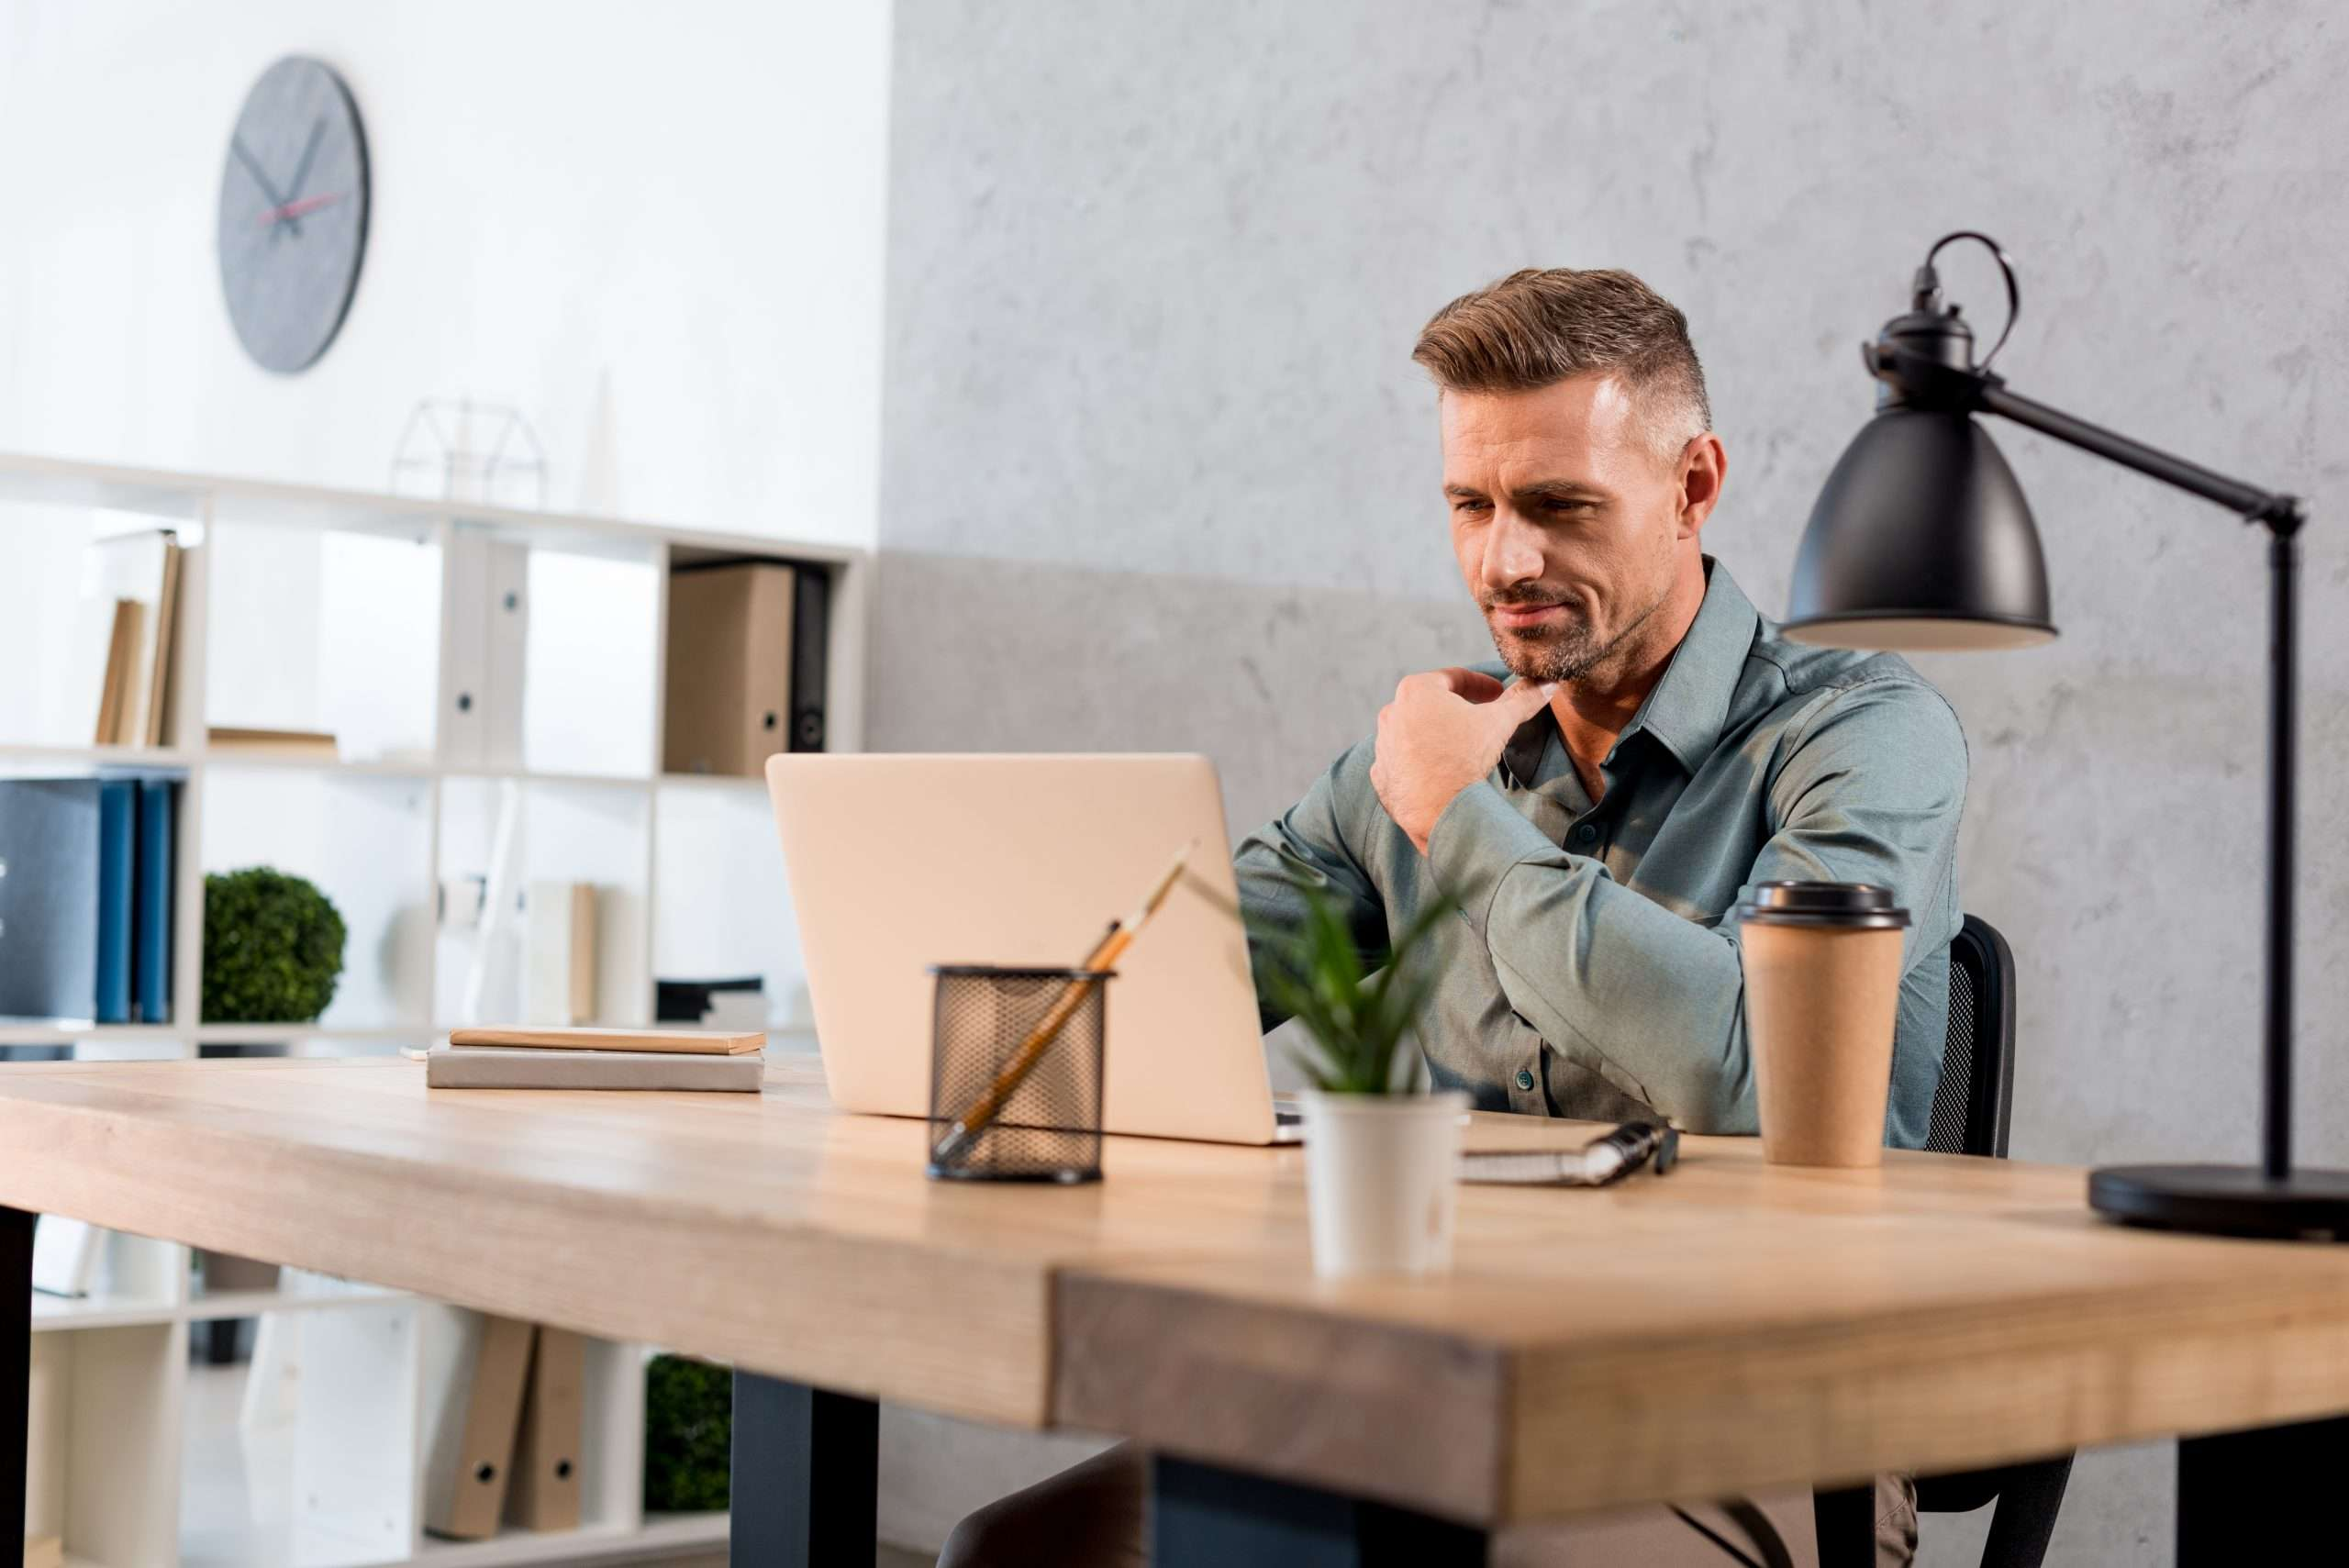 A person sitting at a desk plans to change his business structure